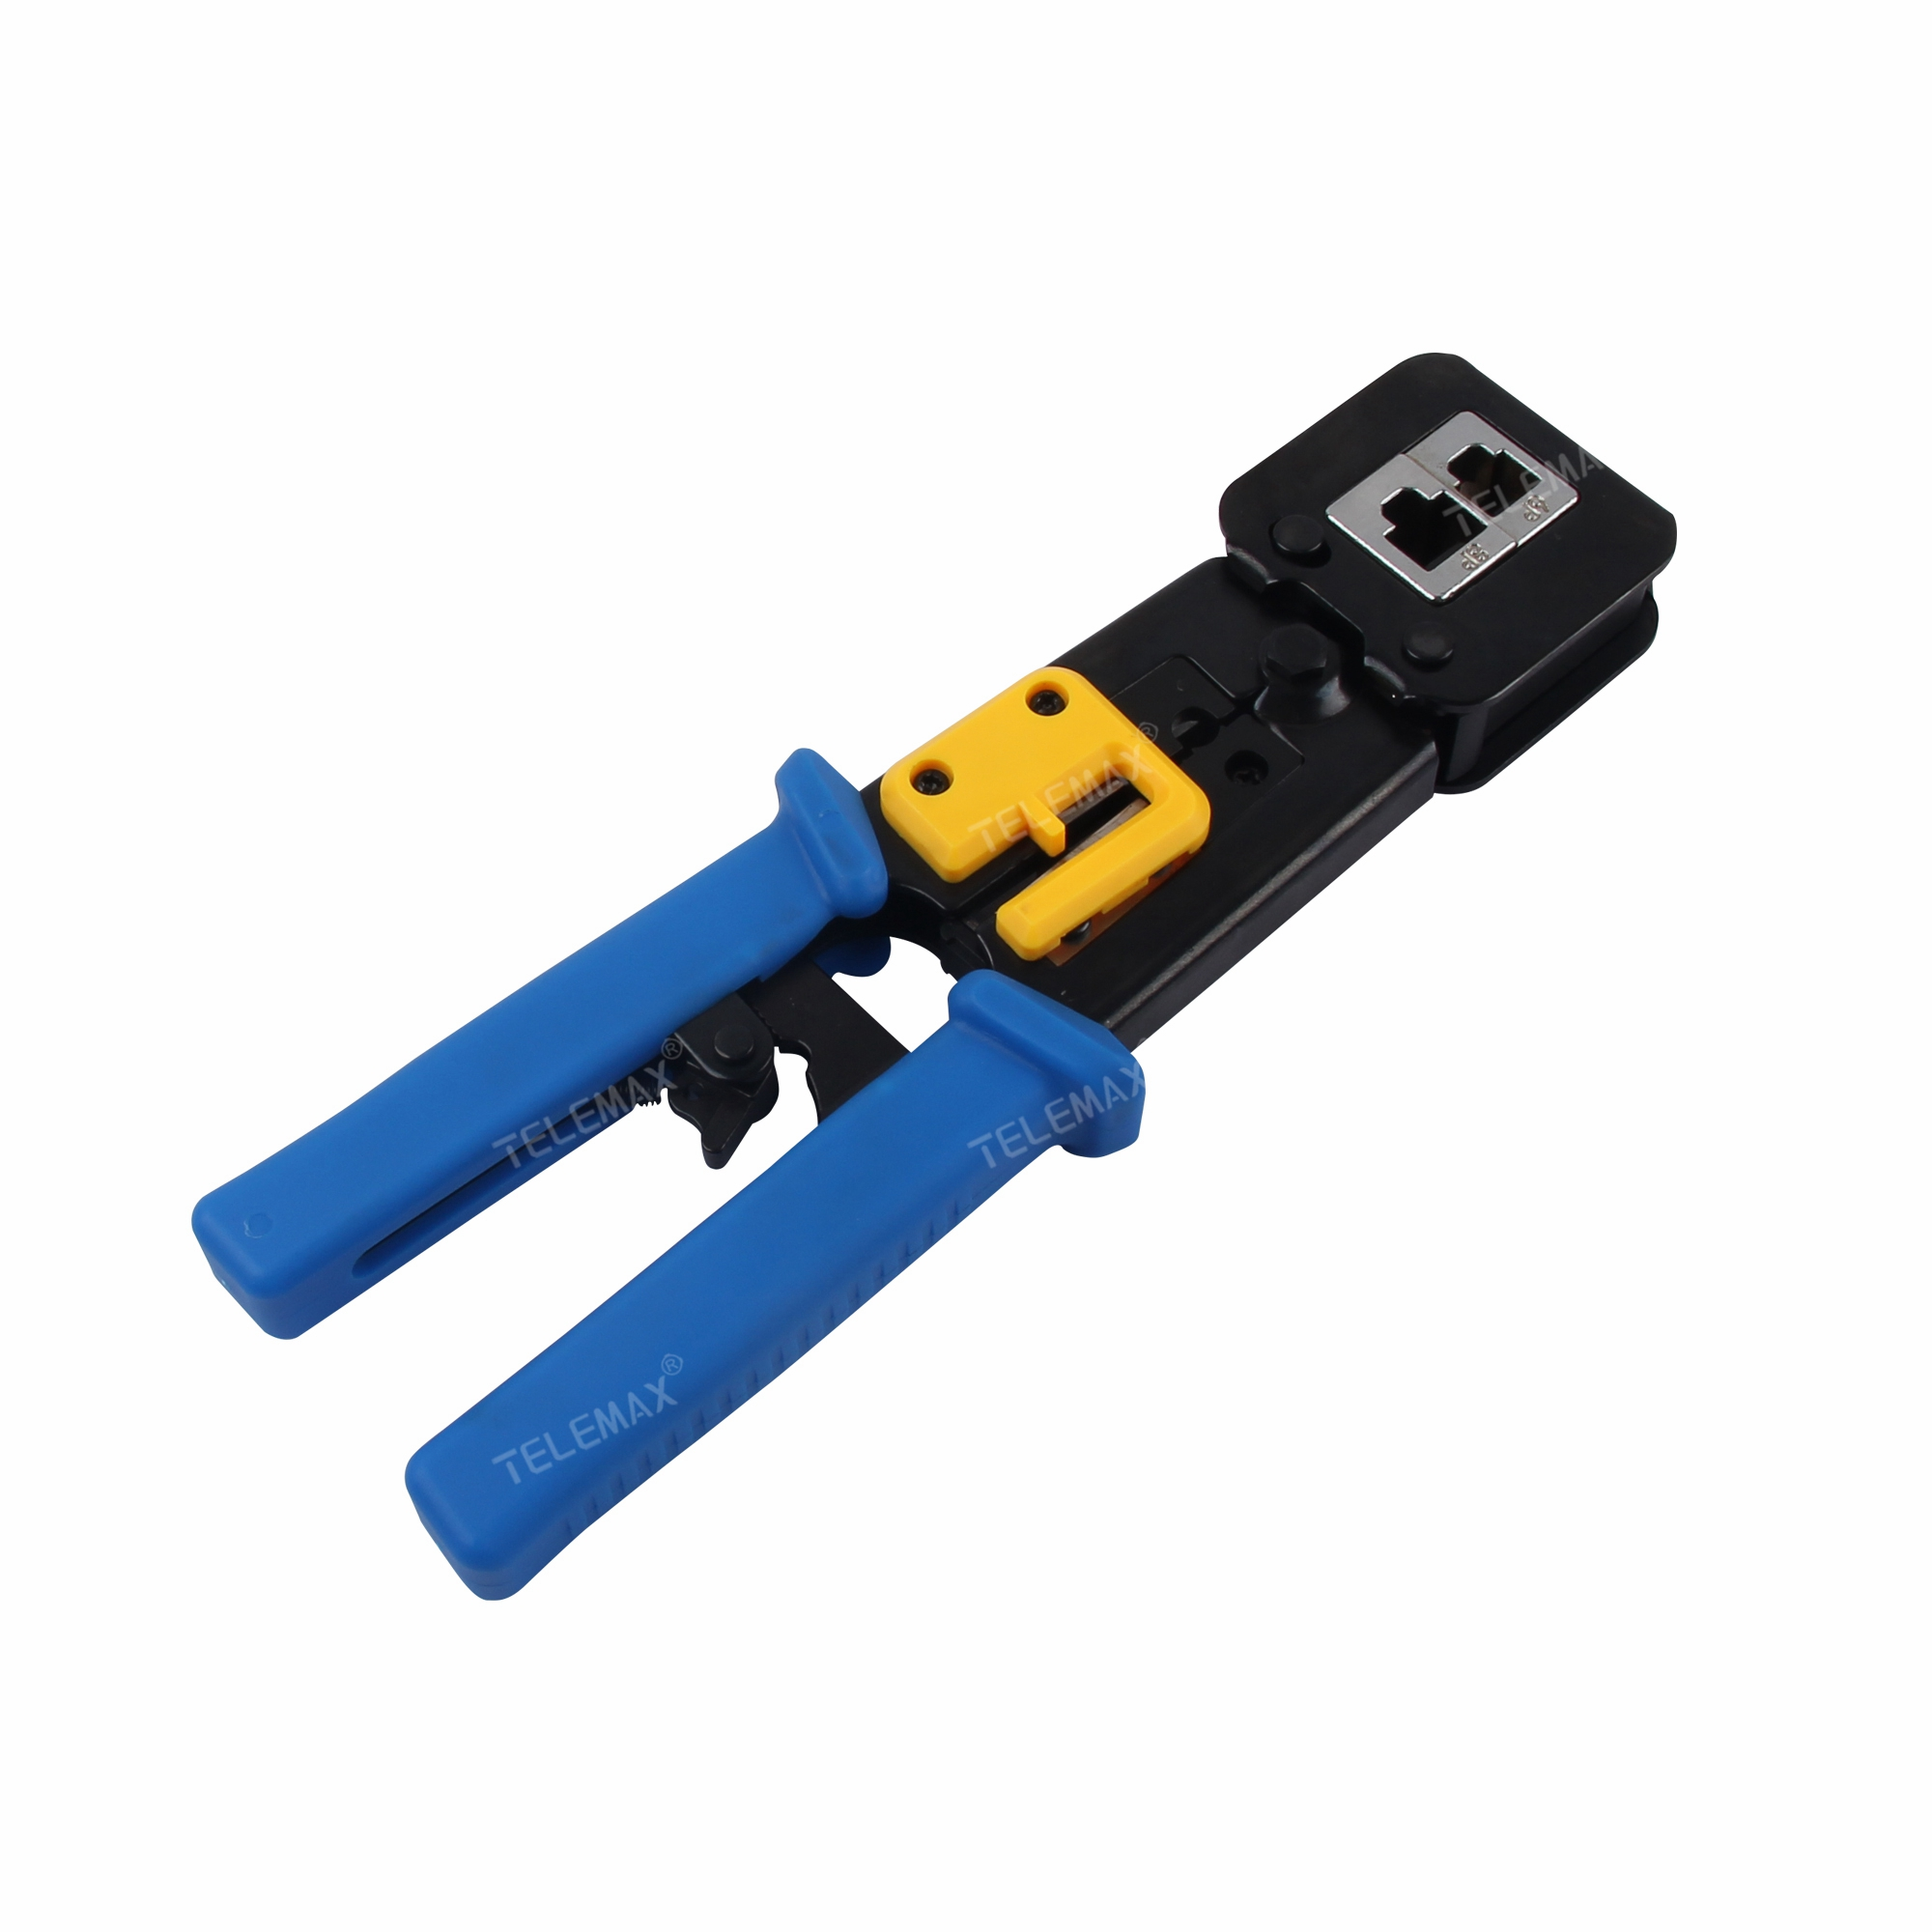 RJ11/RJ45 EZ Connector Crimping Tool